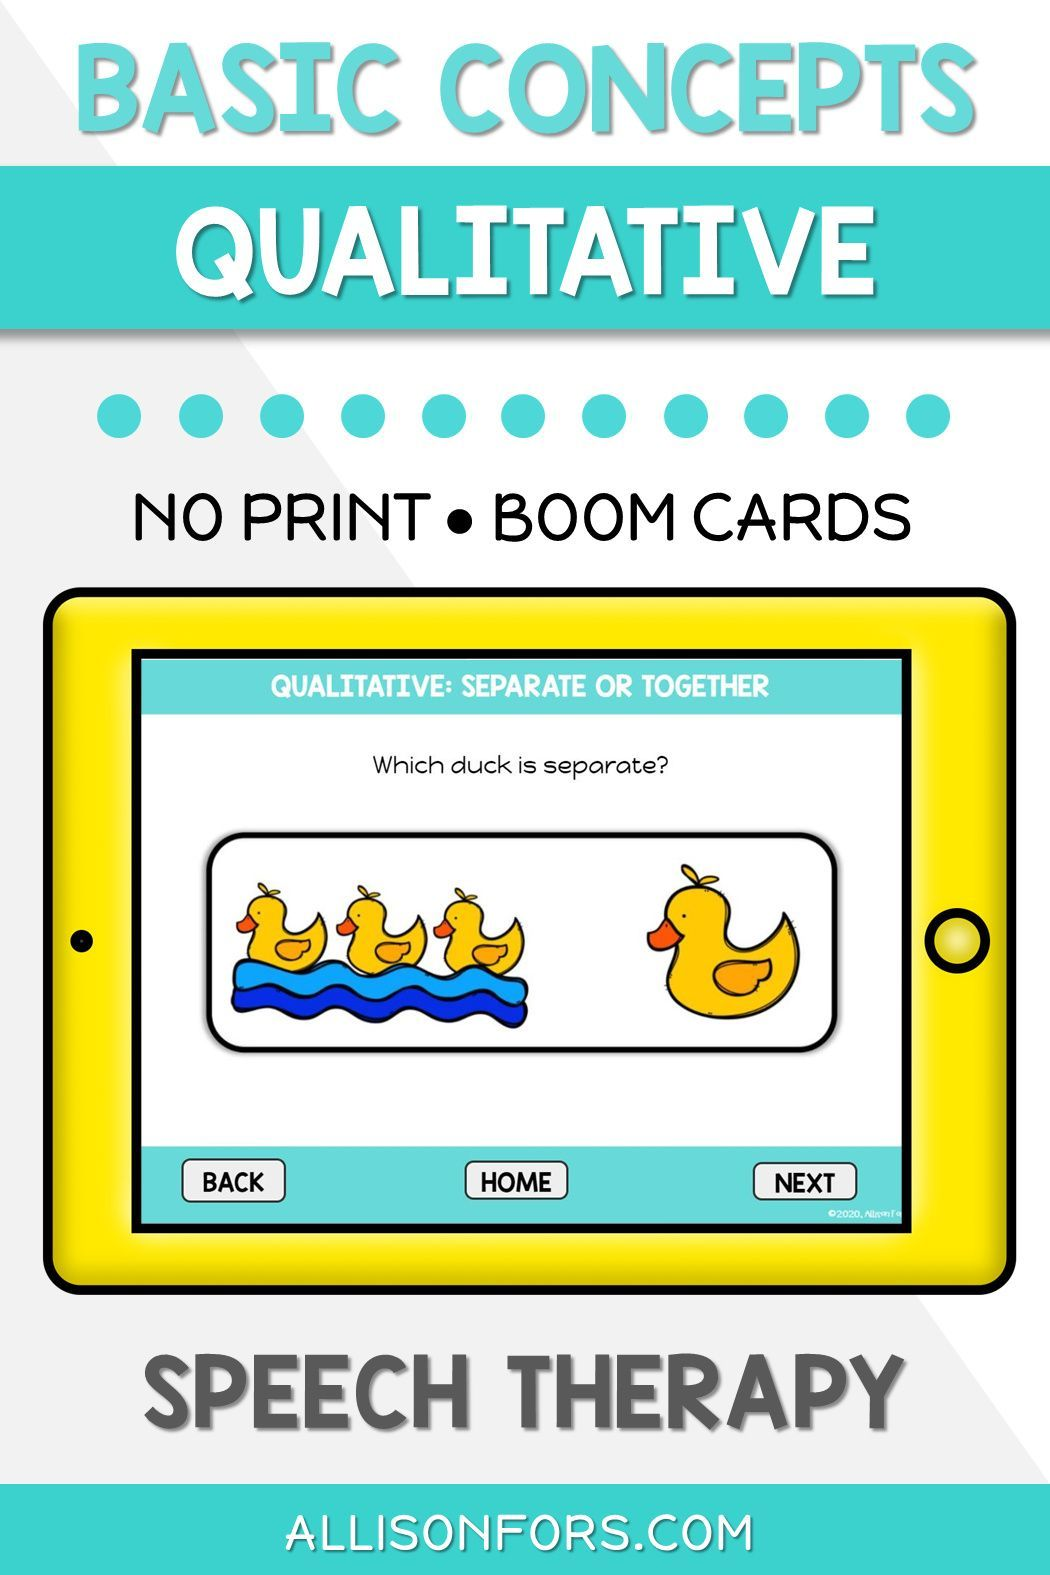 Qualitative Concepts Boom Cards Speech Therapy Distance Learning Basic Concepts Speech Therapy Speech Therapy Basic Concepts [ 1575 x 1050 Pixel ]